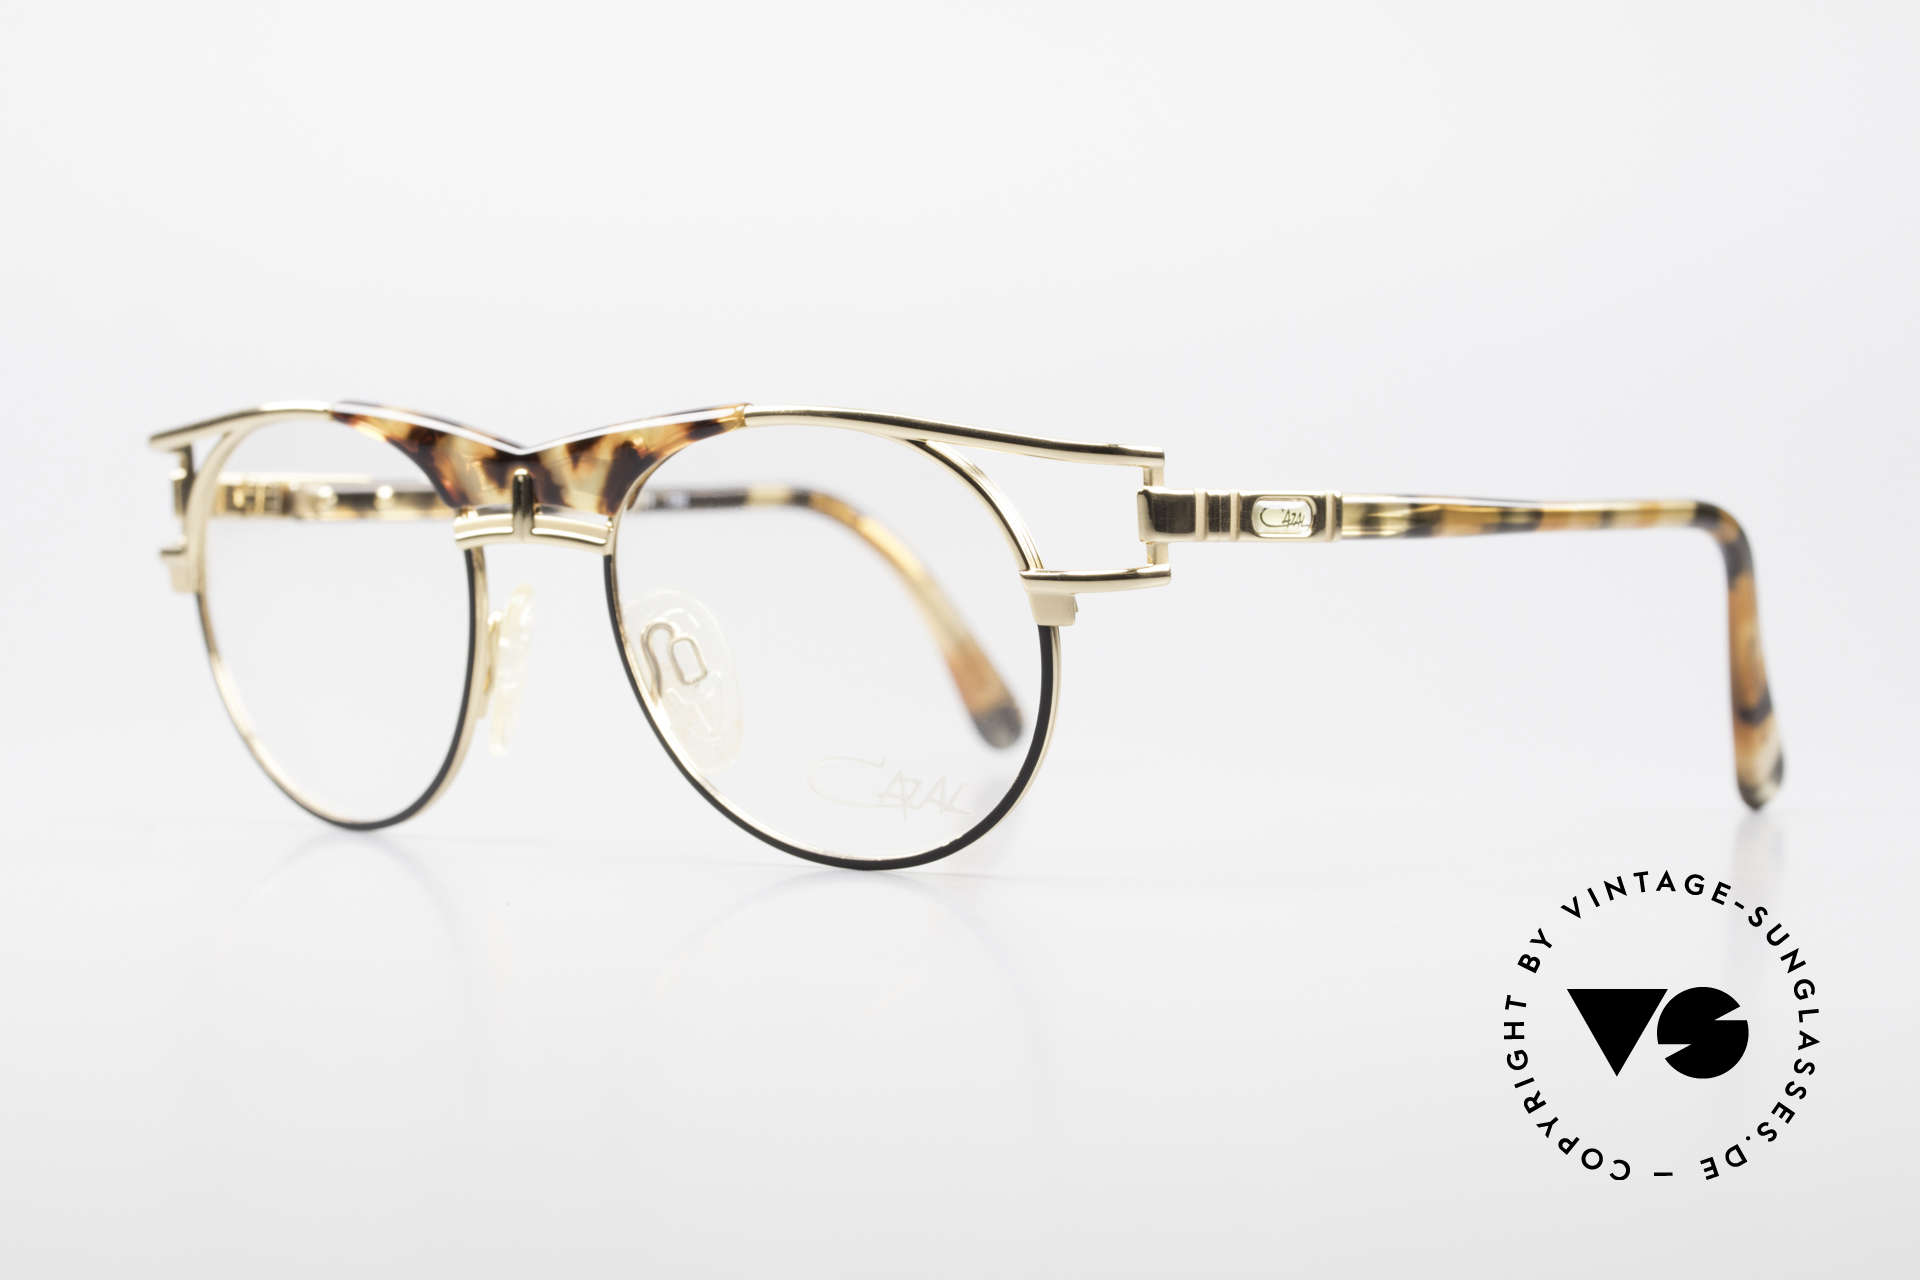 Cazal 244 Iconic 90's Vintage Eyeglasses, fantastic combination of colours and materials, Made for Men and Women